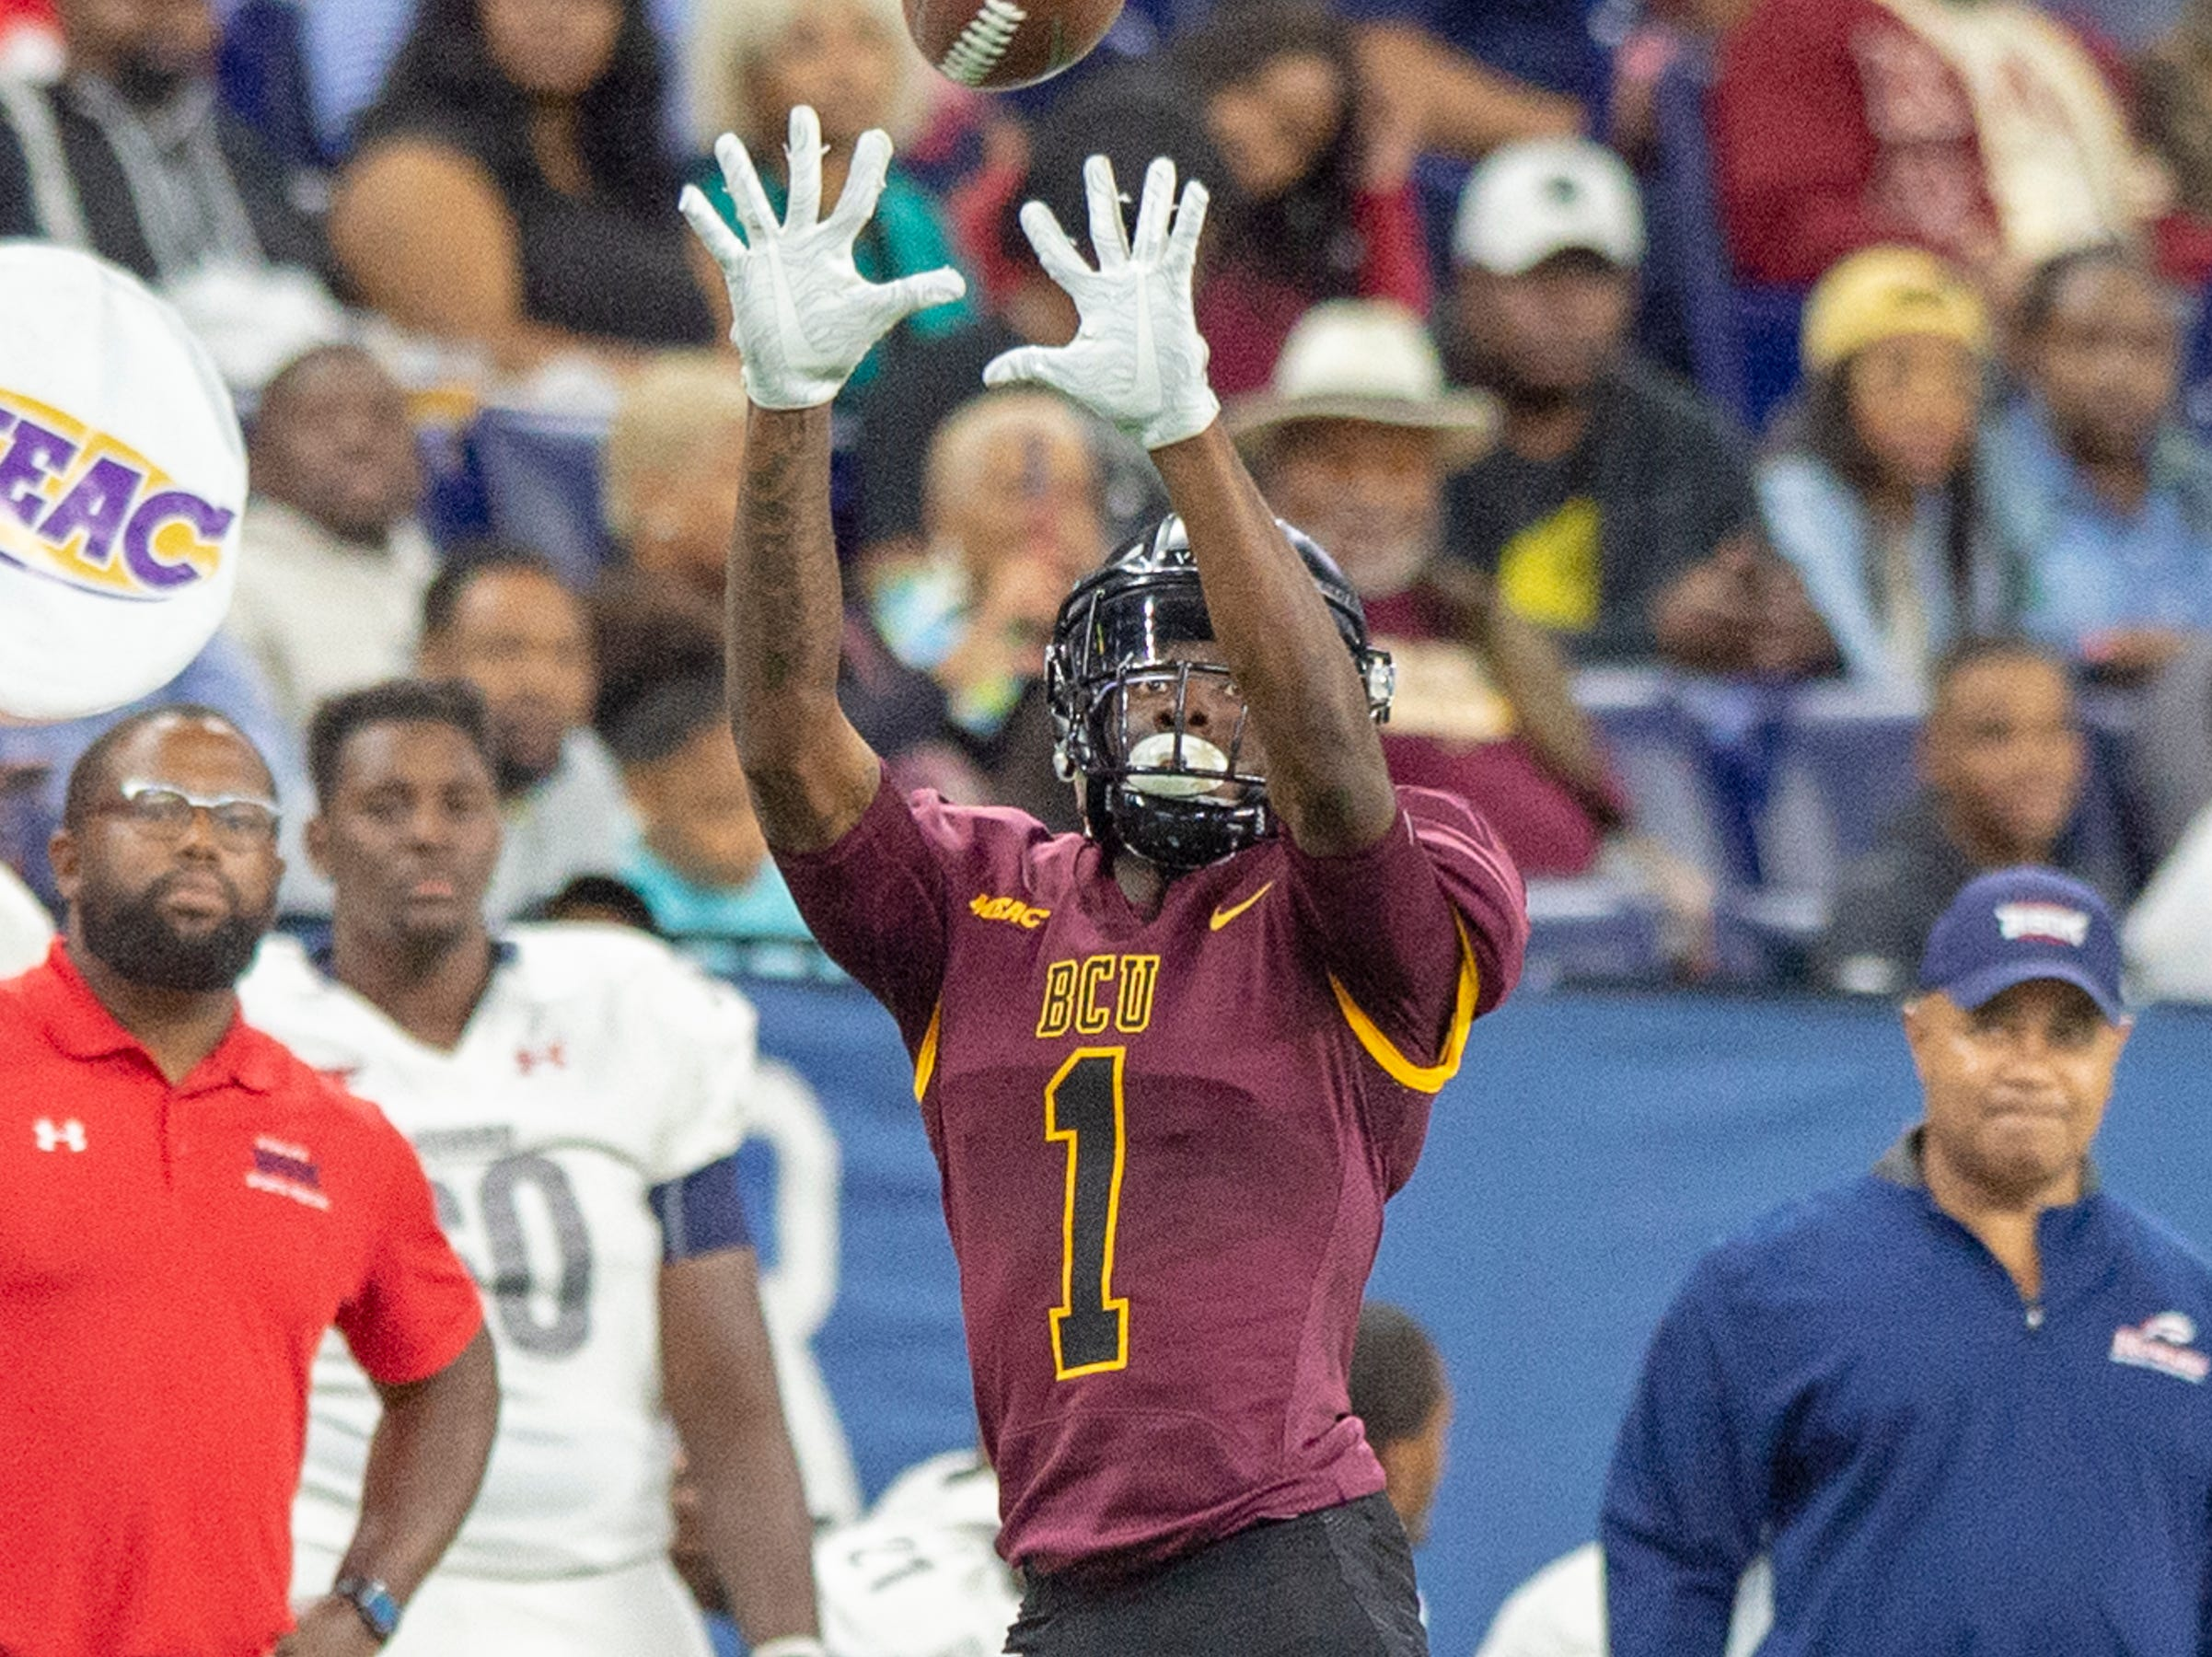 Bethune Cookman Wildcats wide receiver Keavon Mitchell (1) goes after a pass reception during the first half of action. Howard Bison took on Bethune Cookman Wildcats in the Circle City Classic game, Saturday, Sept. 22, 2018, at Lucas Oil Stadium.